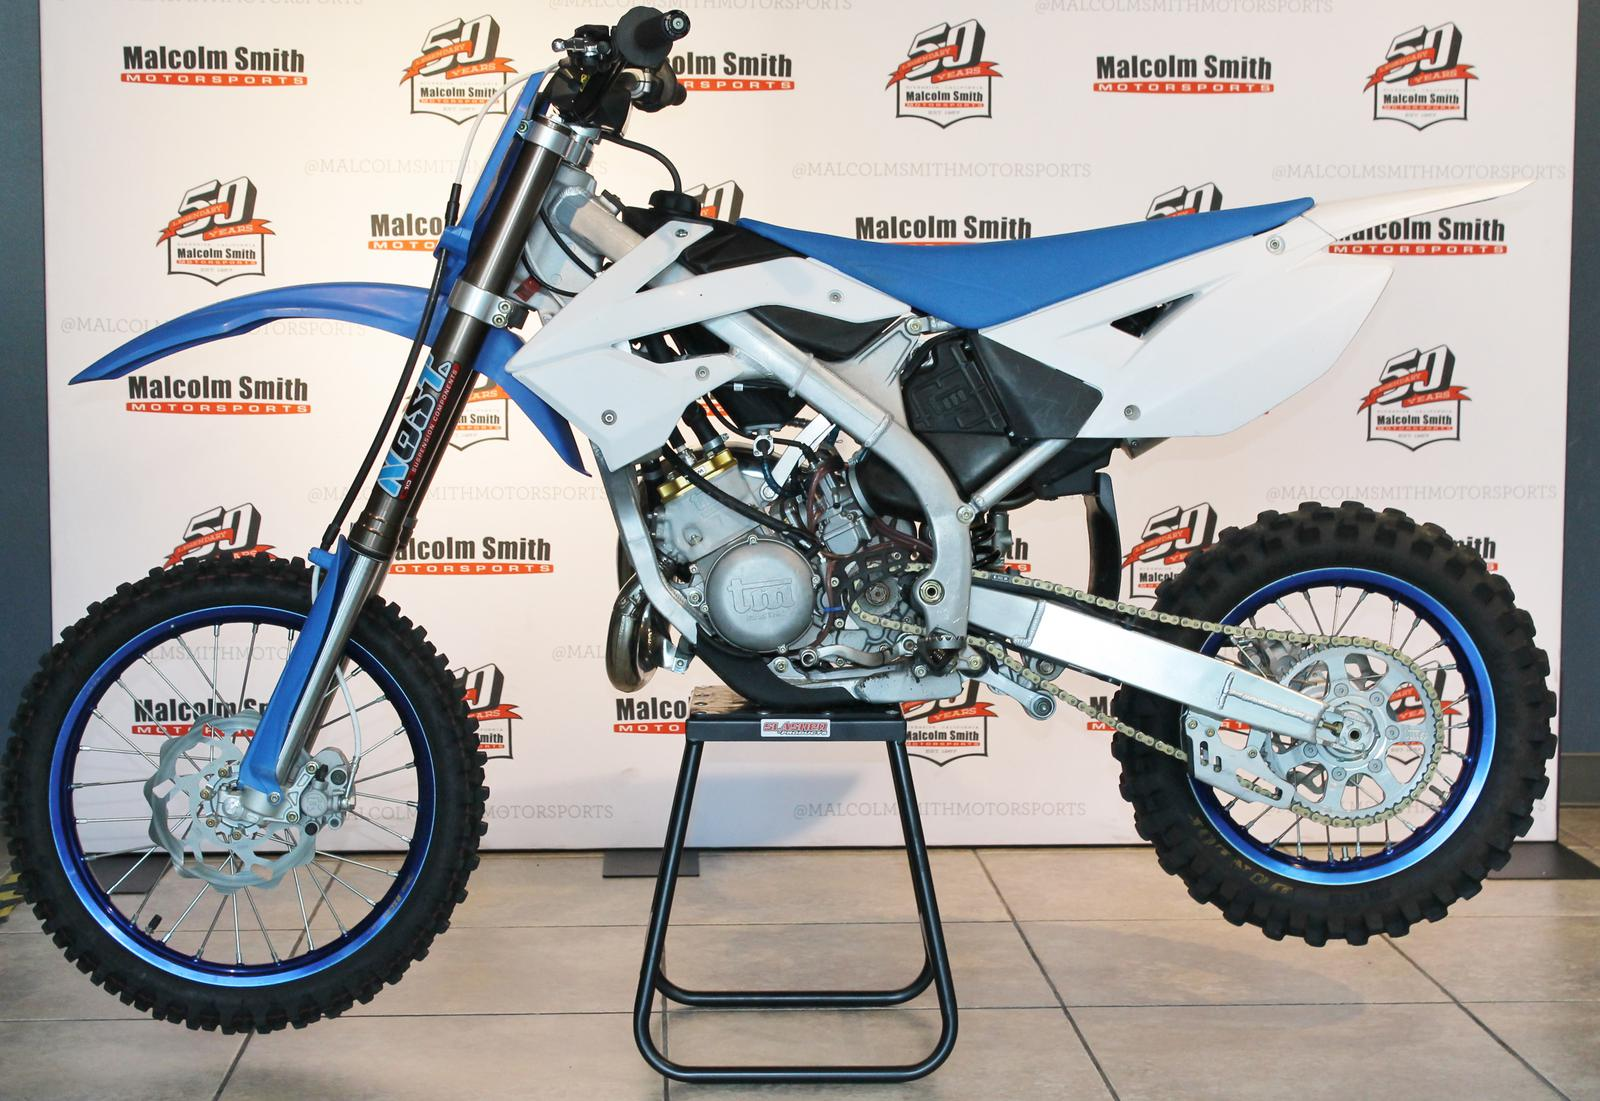 Tm Dirt Bikes >> Dirt Bikes From Tm Racing Malcolm Smith Motorsports